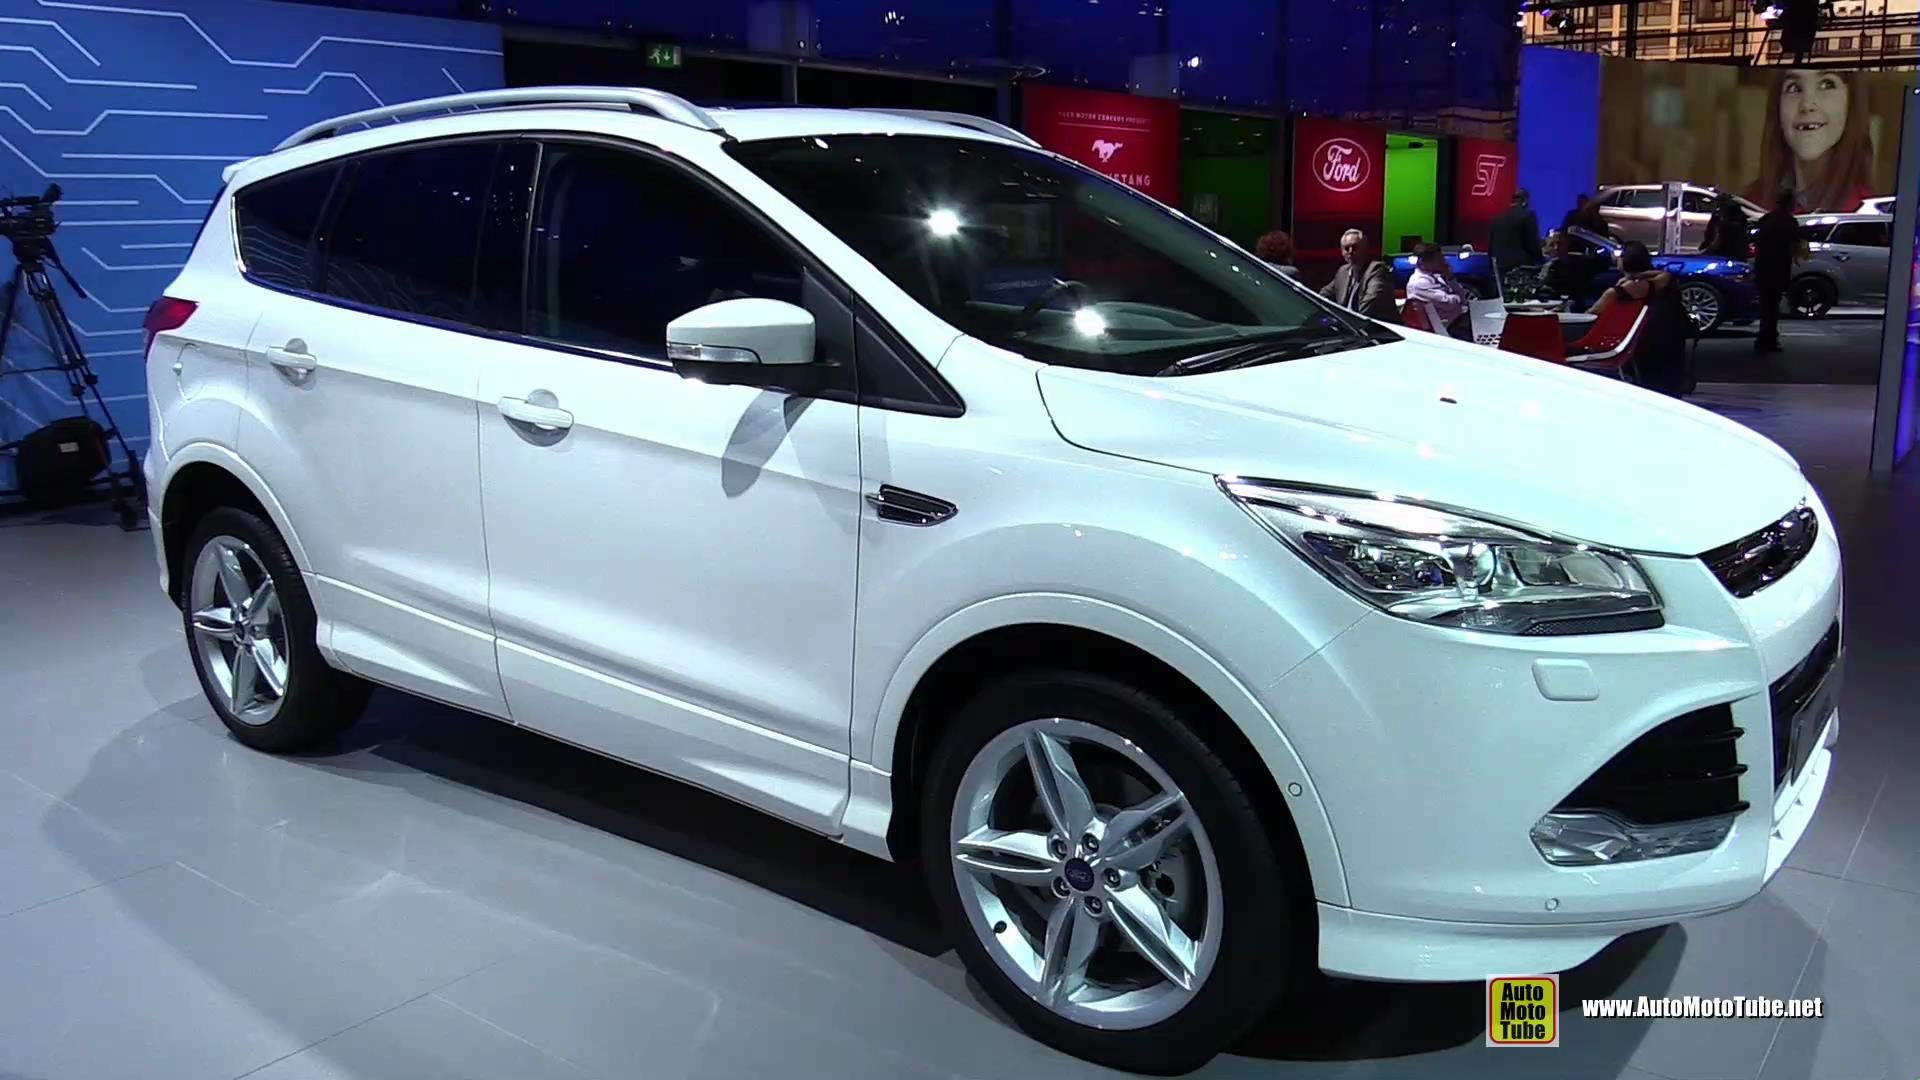 ford kuga ii 2015 pictures #1